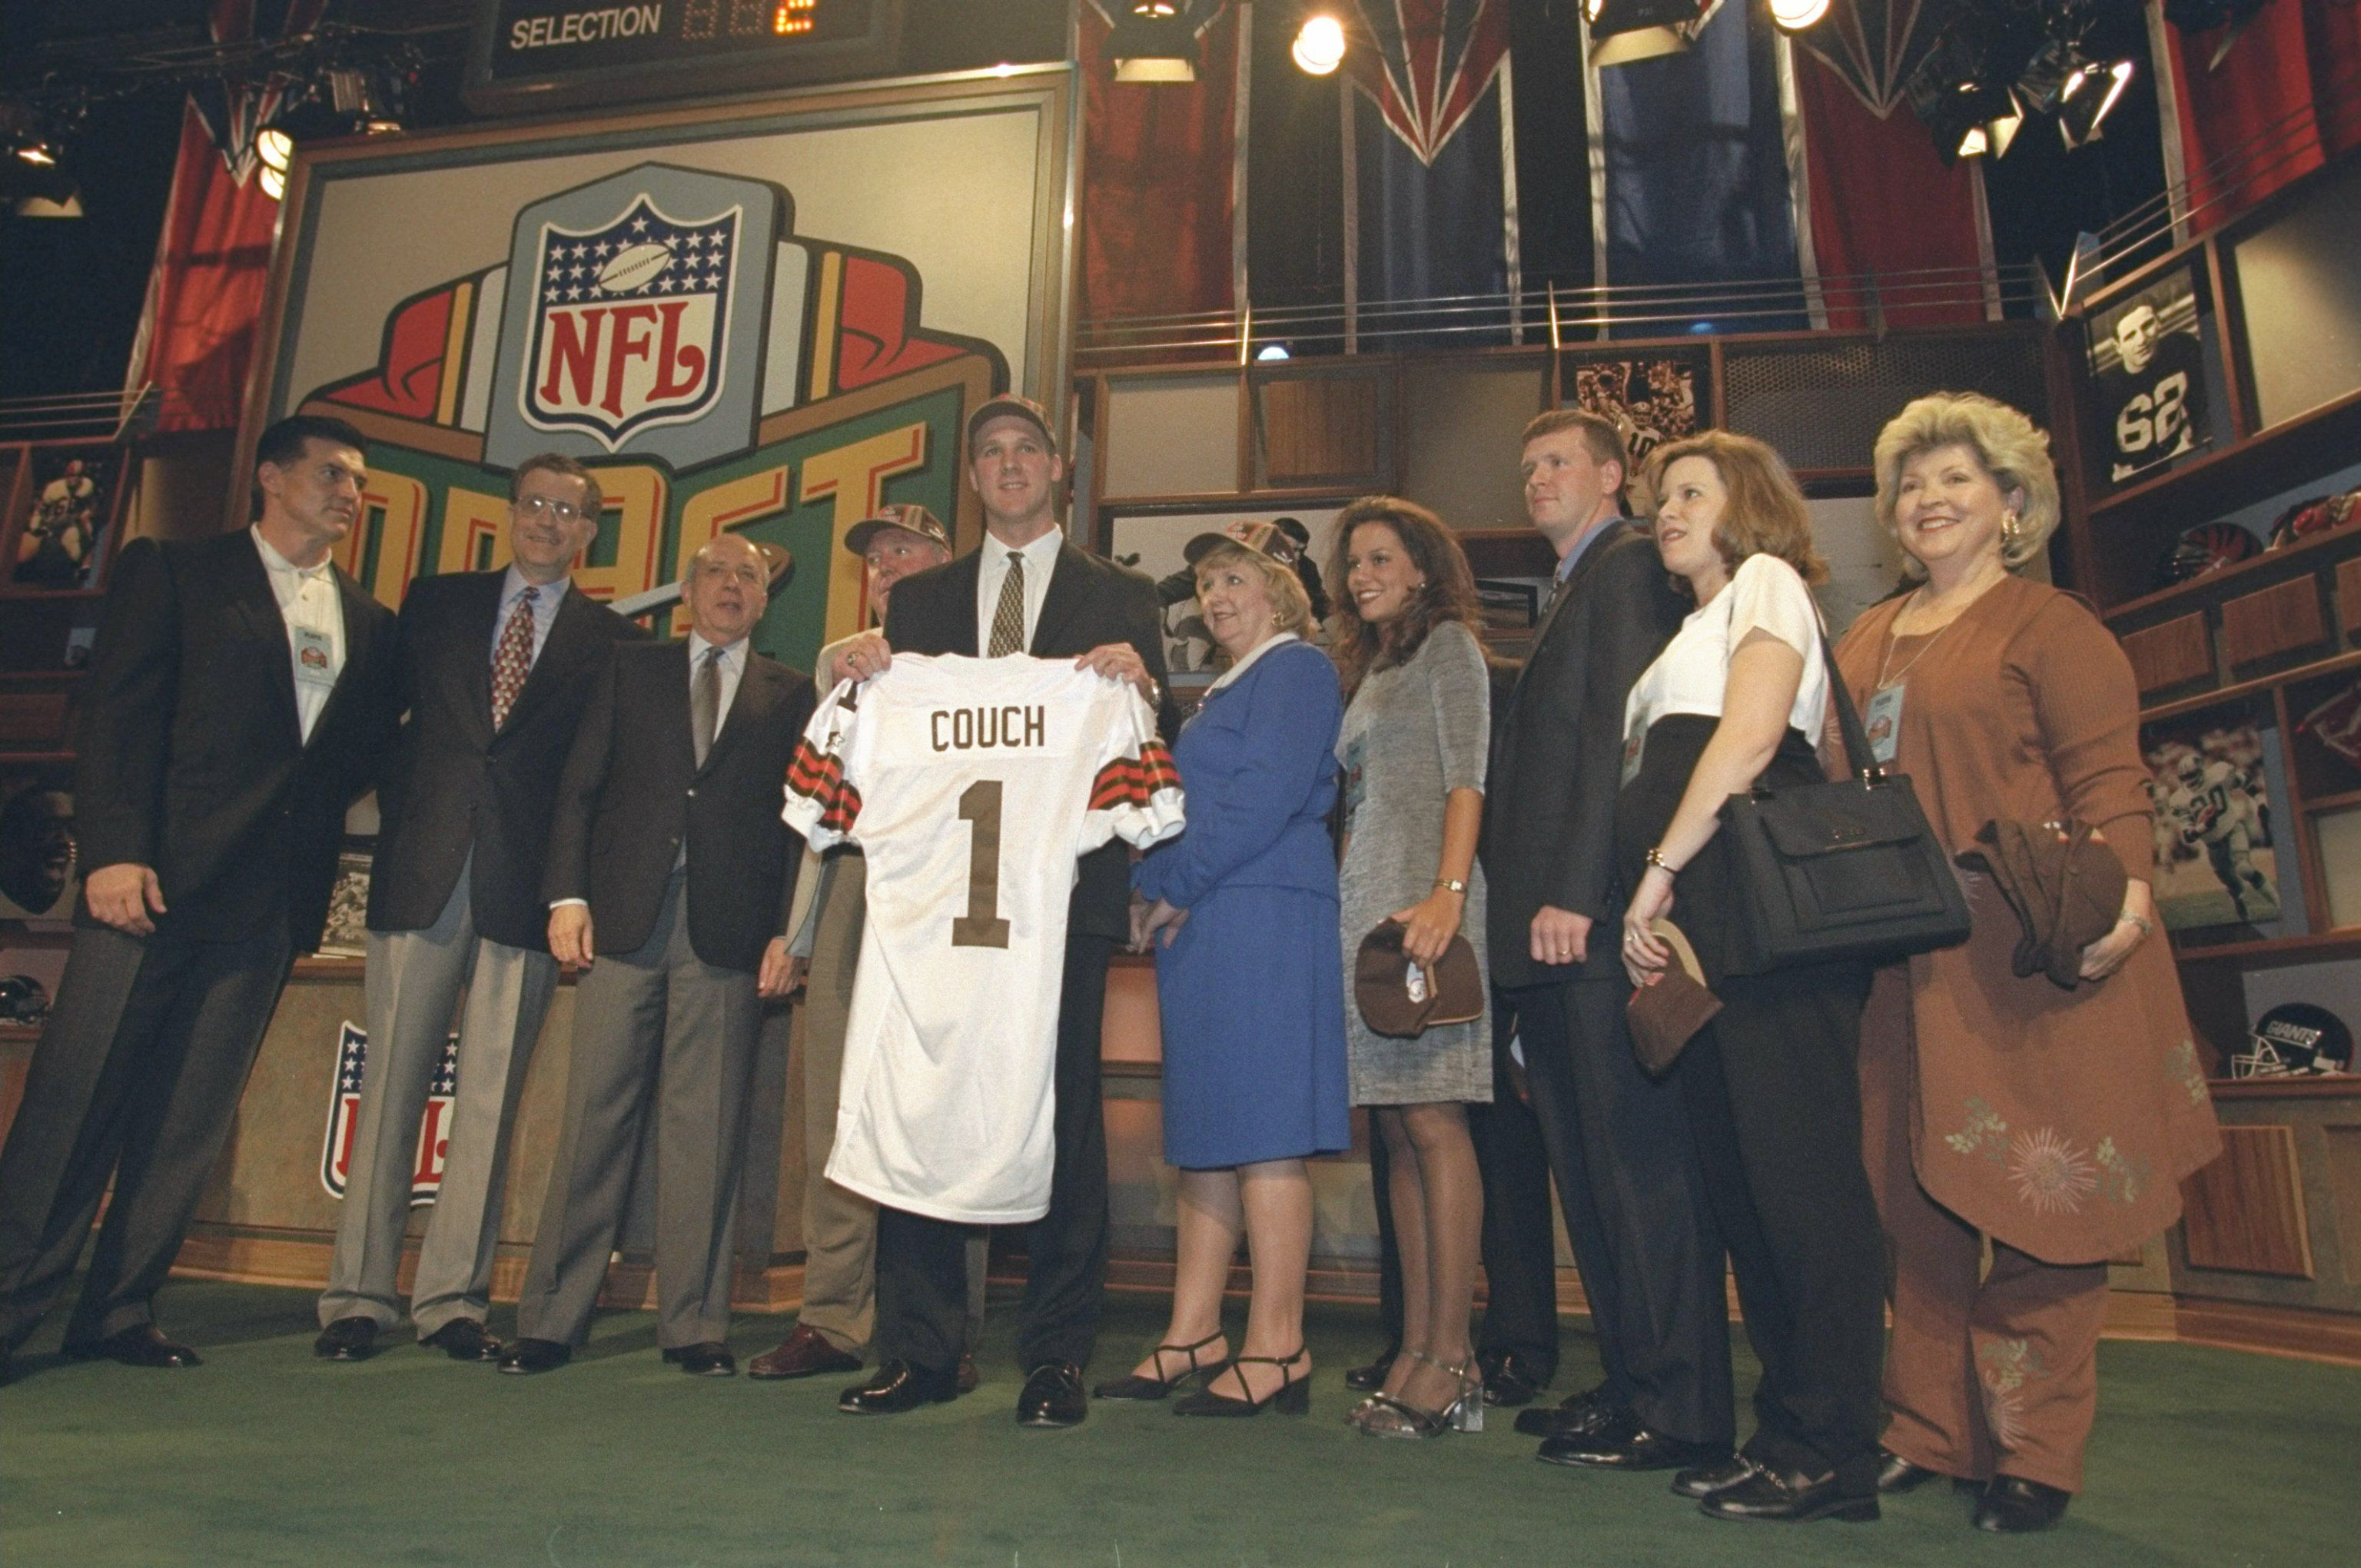 Tim Couch poses on draft night